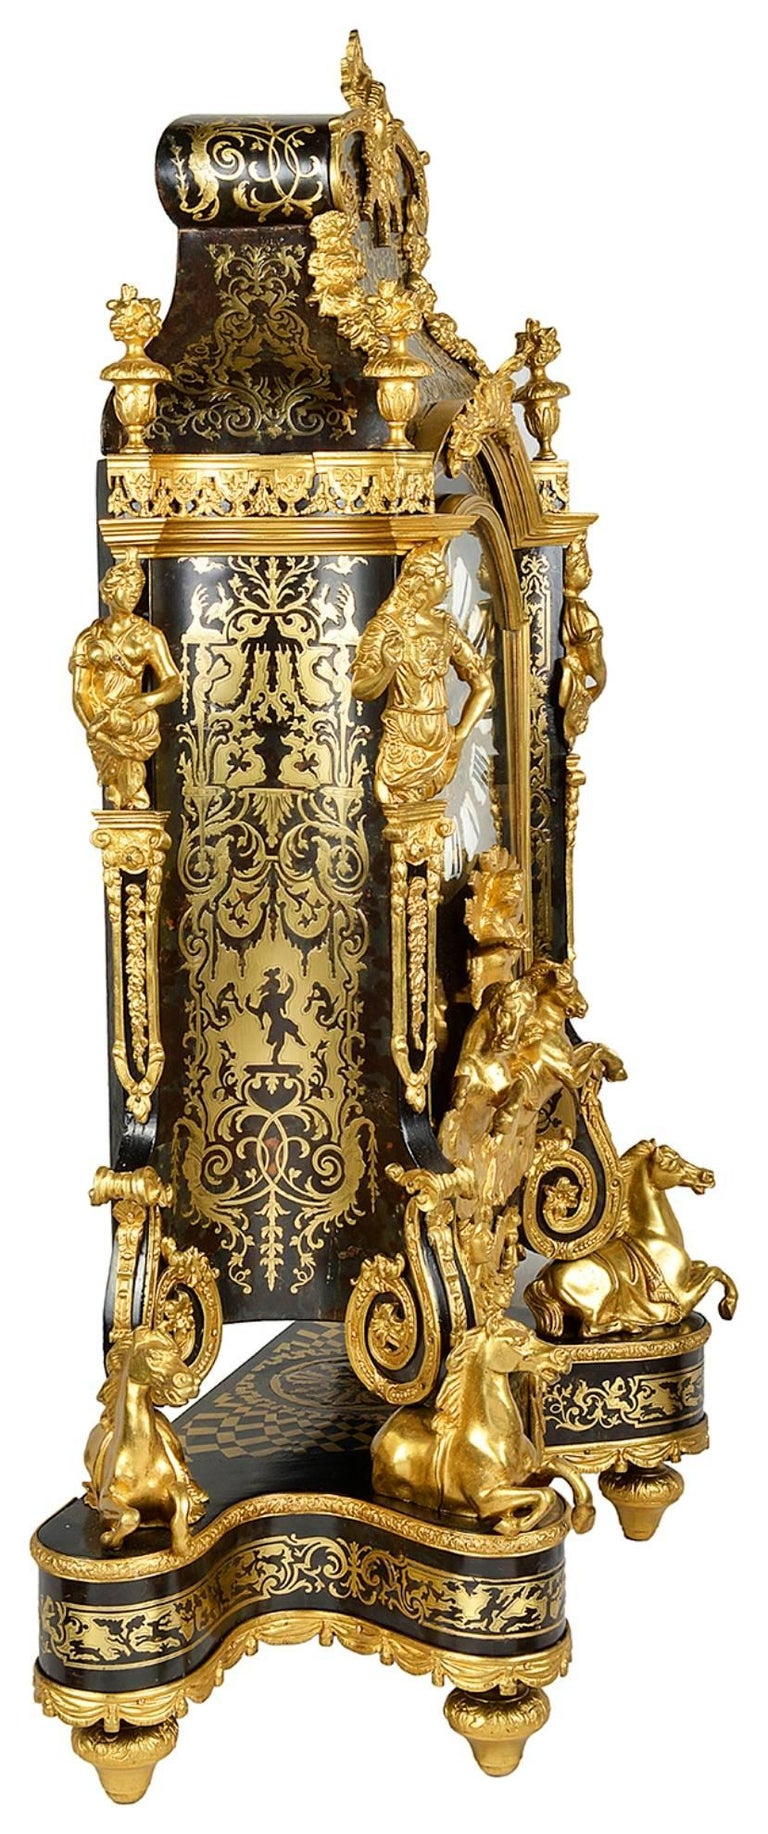 Large, 19th Century Boulle inlaid Mantel clock For Sale 1